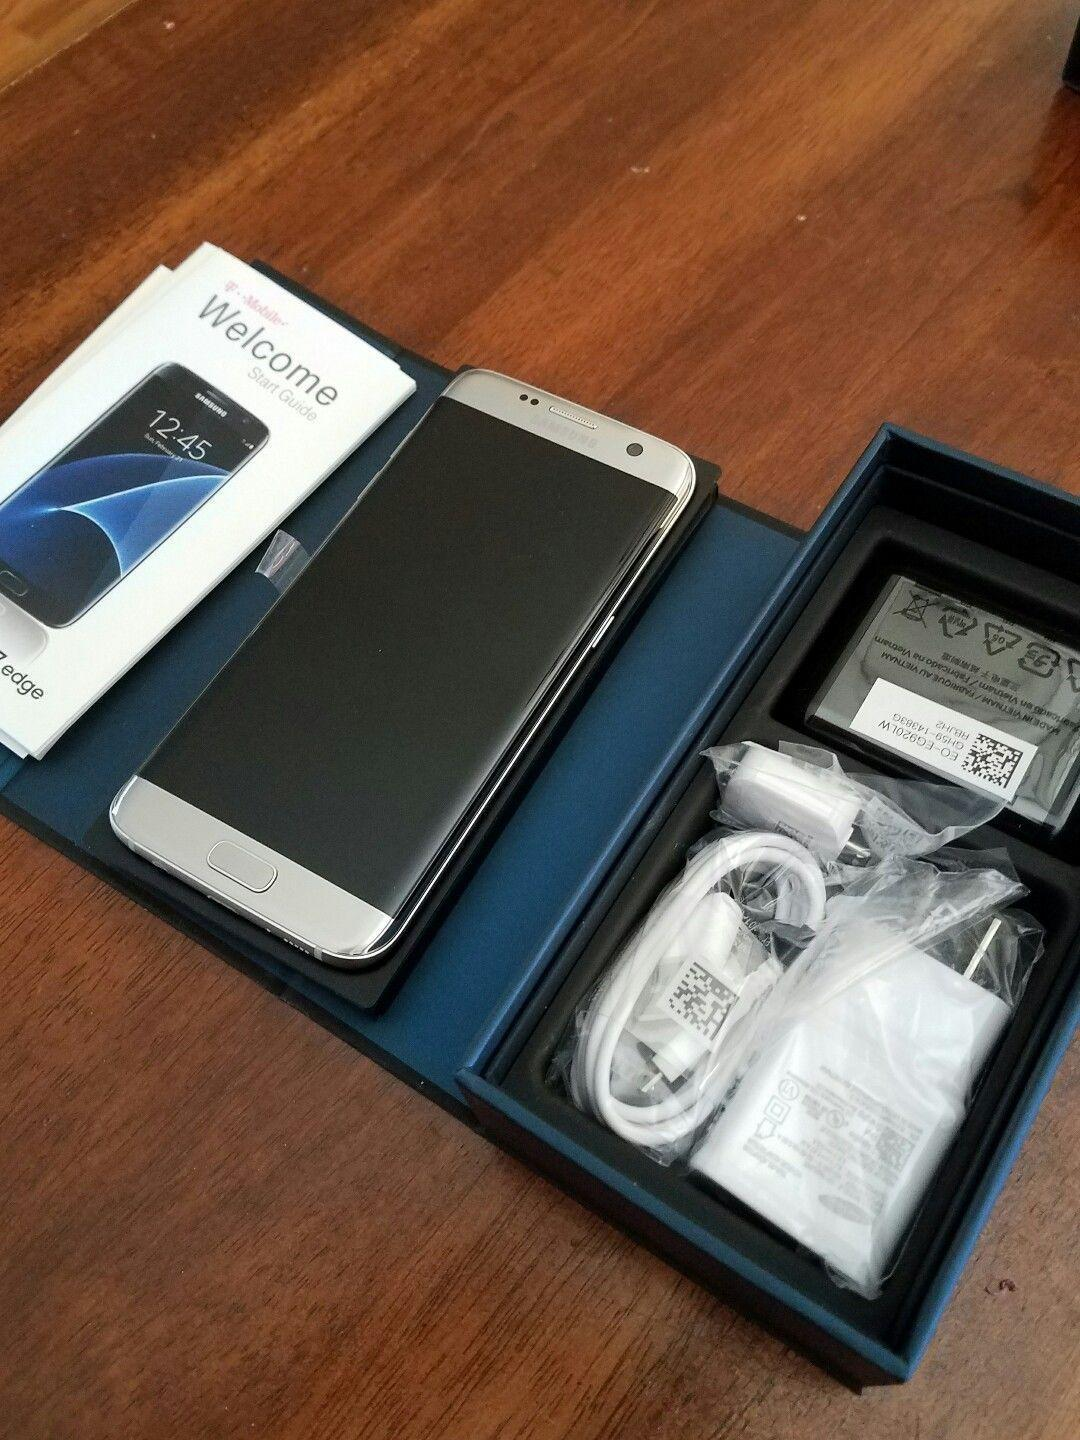 Samsung Galaxy S7 Edge Sm G935 32gb Silver Titanium Unlocked Smartphone Reviews Amp Rating